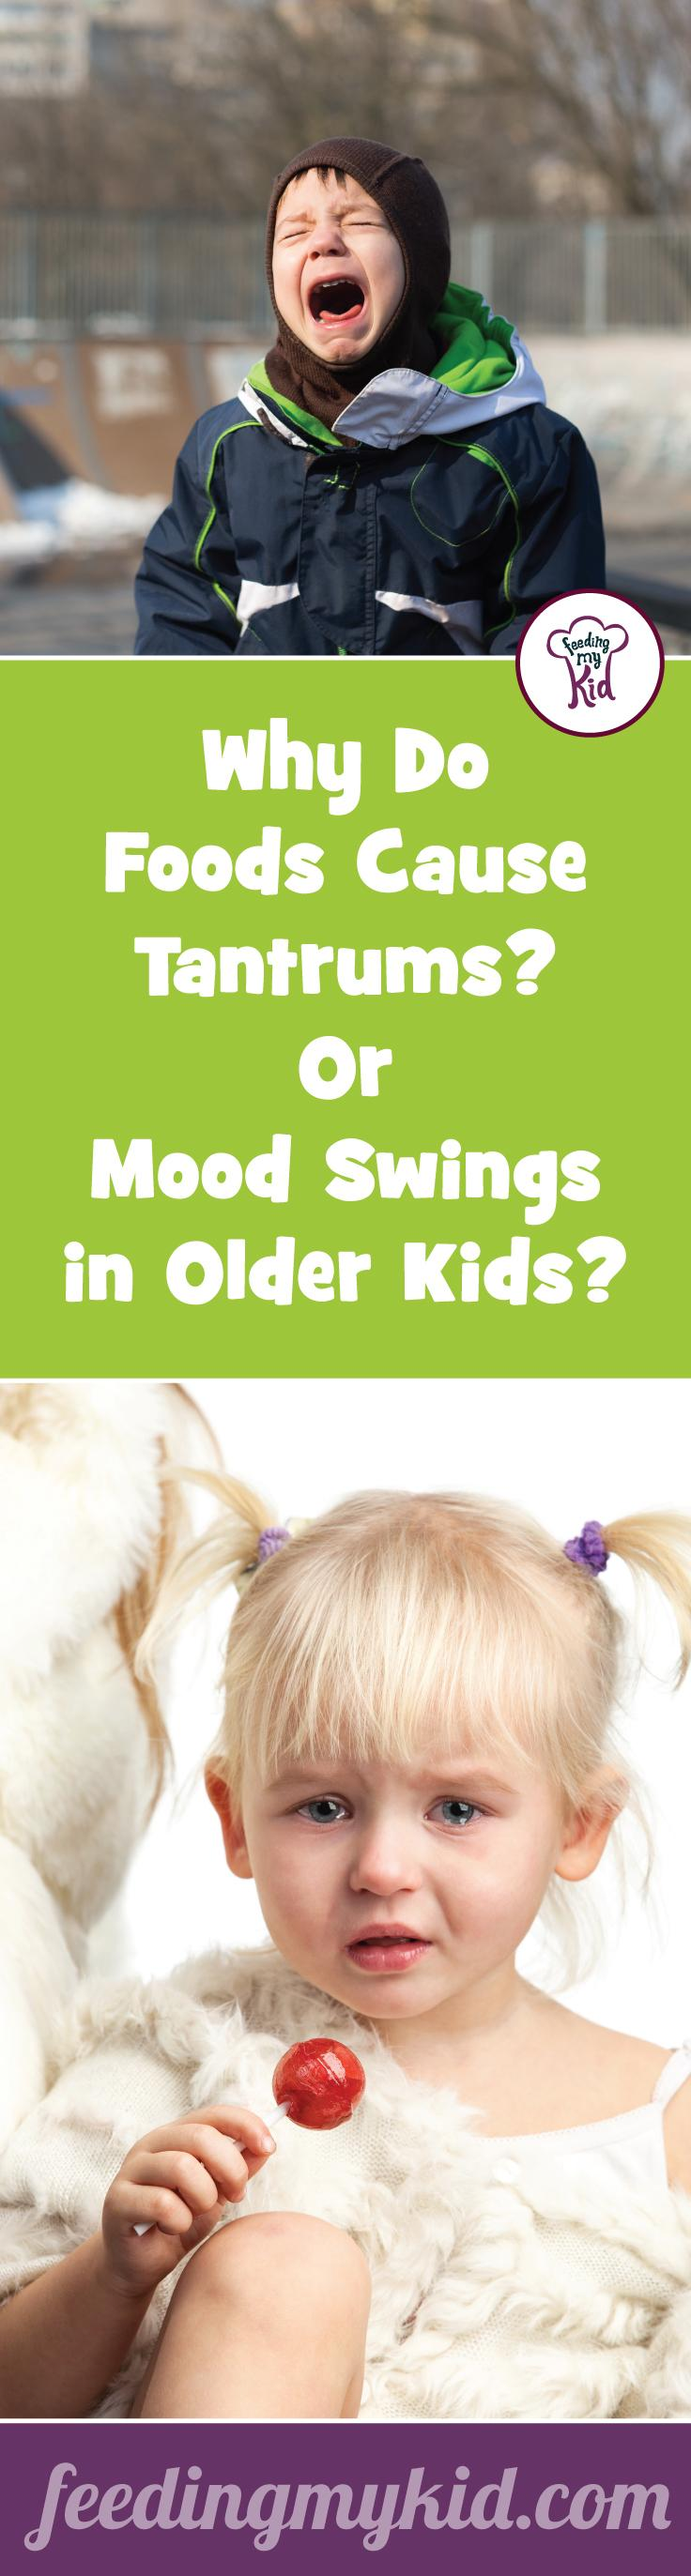 Did you know certain foods can cause tantrums in some kids? Check out this article to find out what foods you should avoid feeding your child. More important find out what foods you should be feeding your child to stabilize his or her mood and supercharge your child's creativity and concentration. Also, find out which food additives are making children behave poorly.